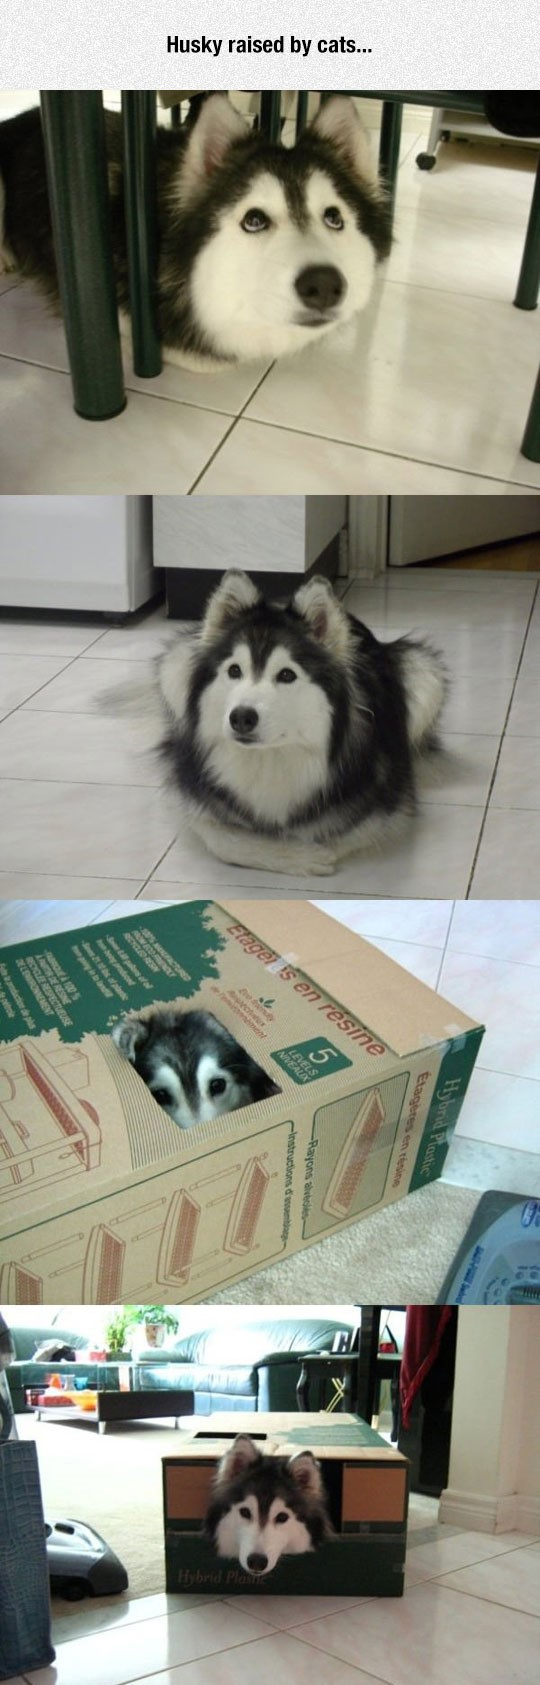 funny-husky-raised-by-cats-dog